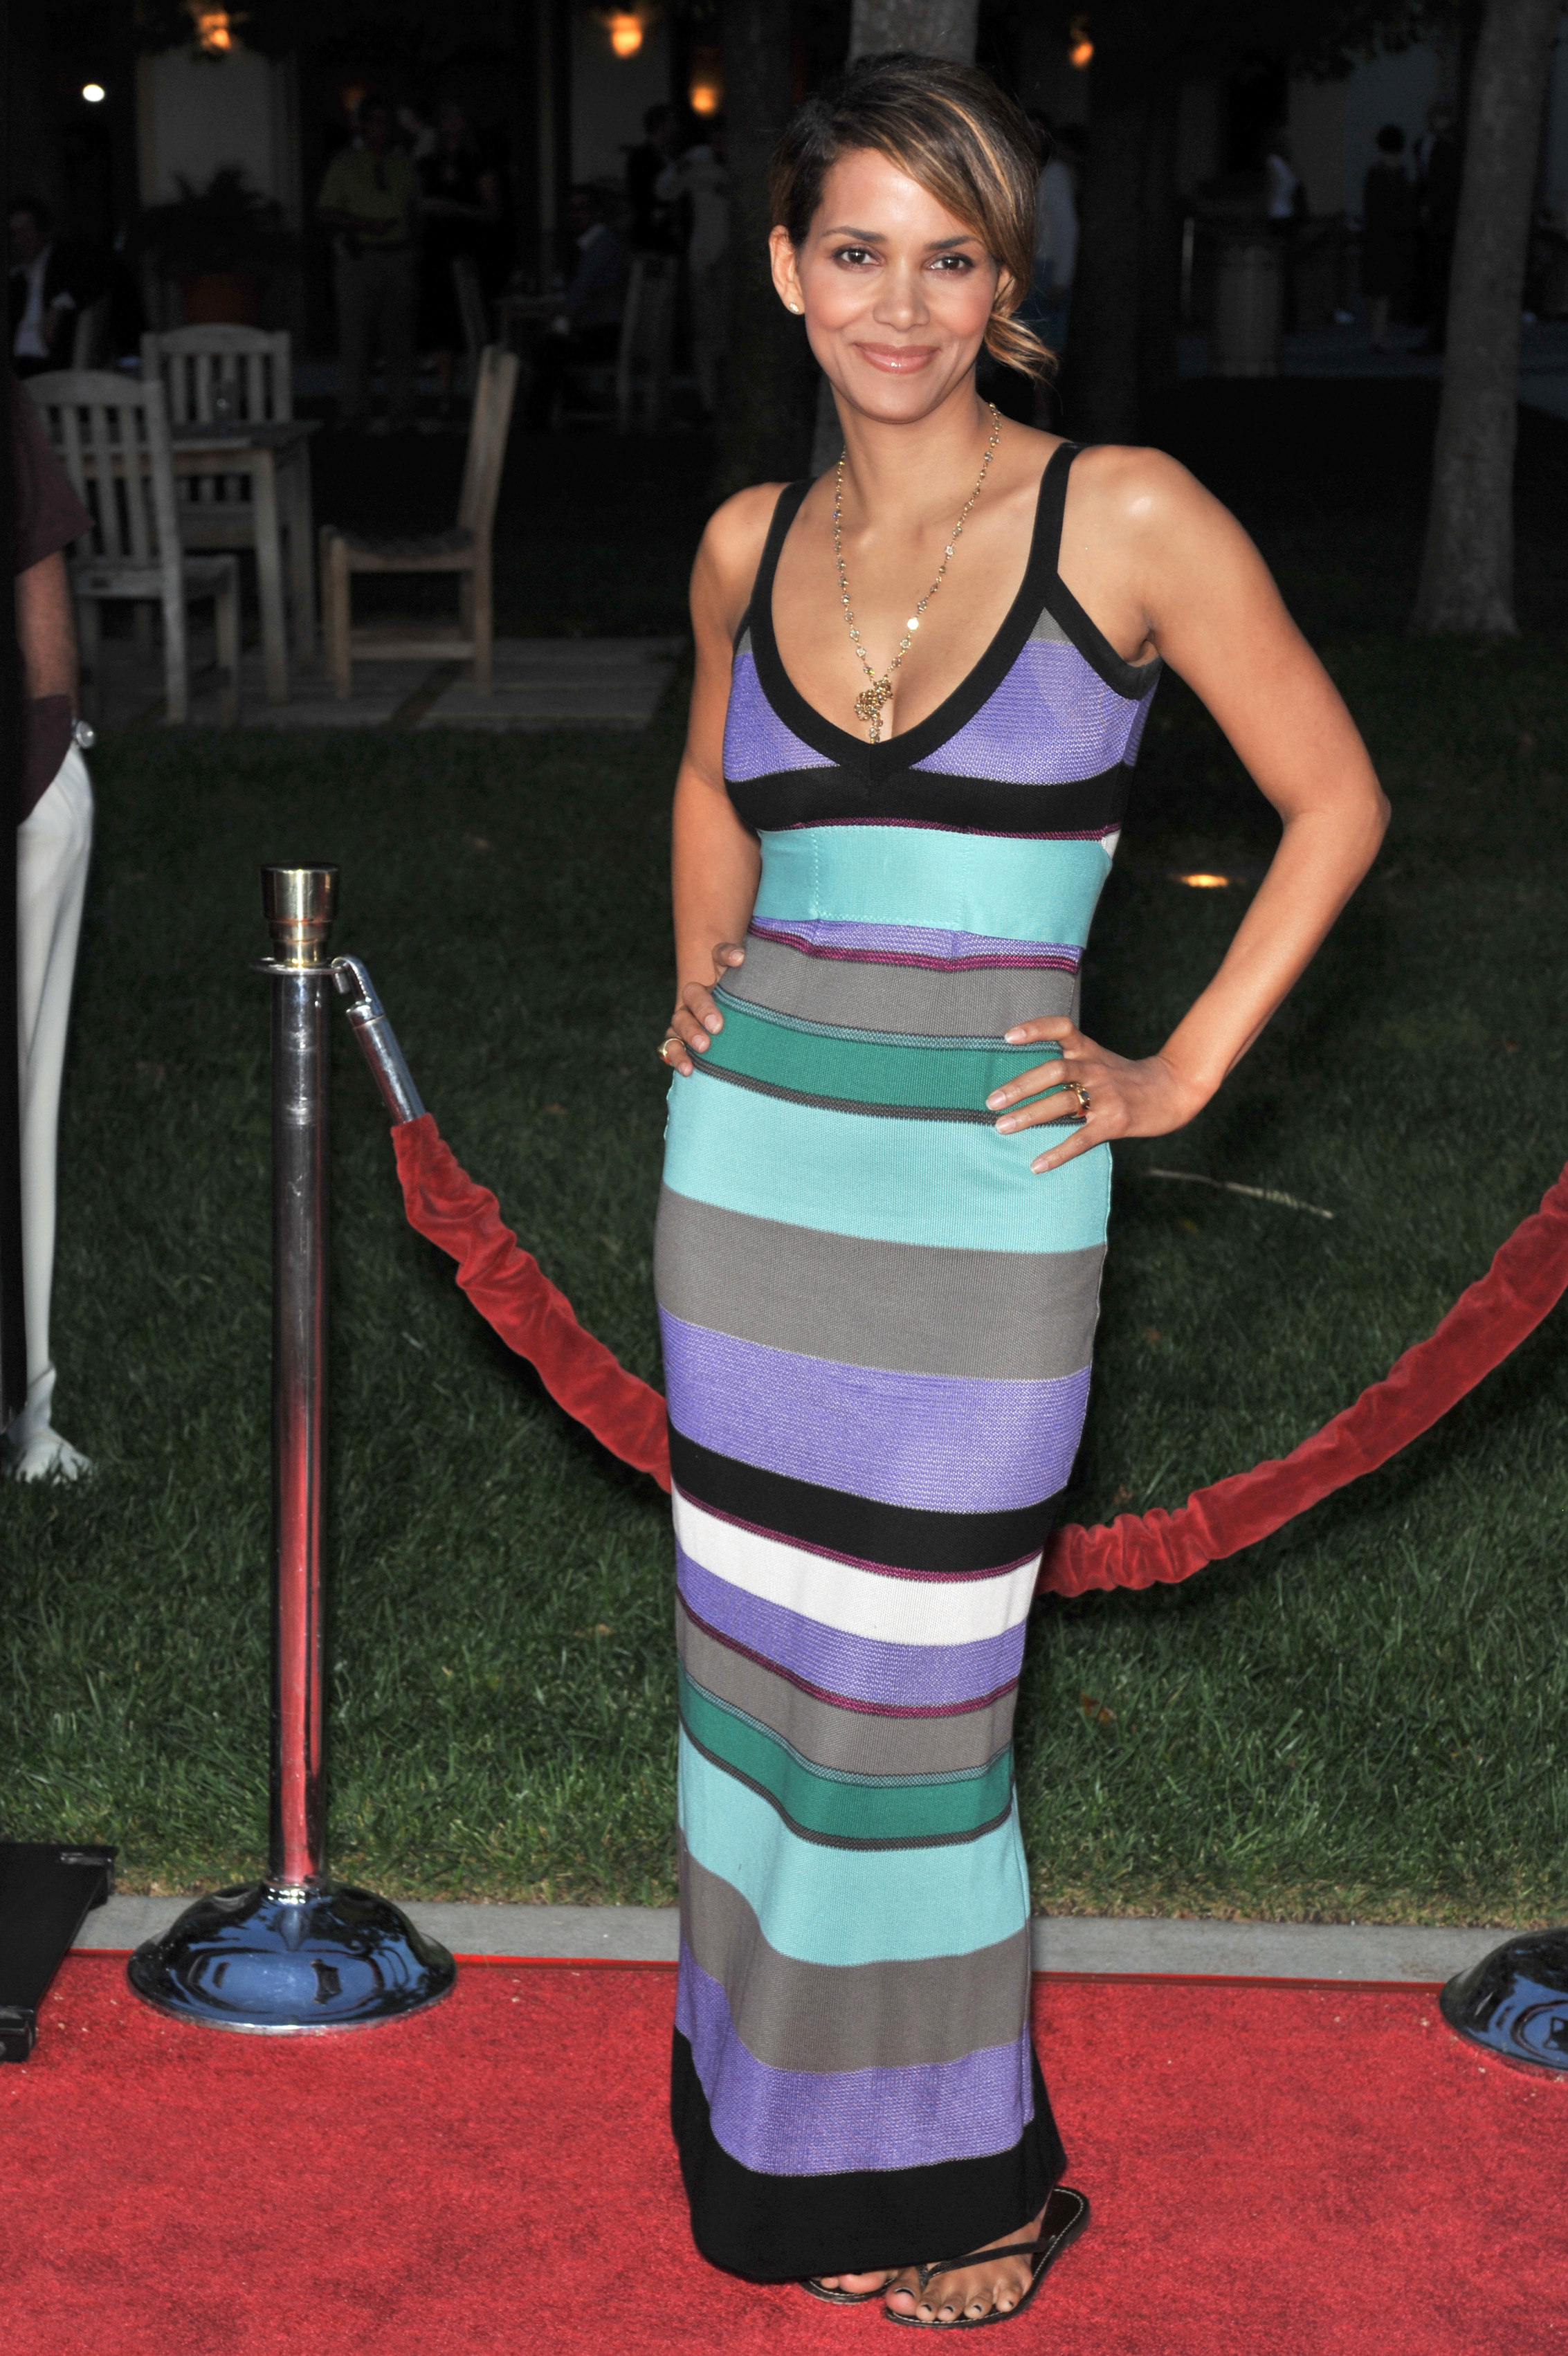 69498_Halle_Berry_The_Soloist_premiere_in_Los_Angeles_43_122_135lo.jpg